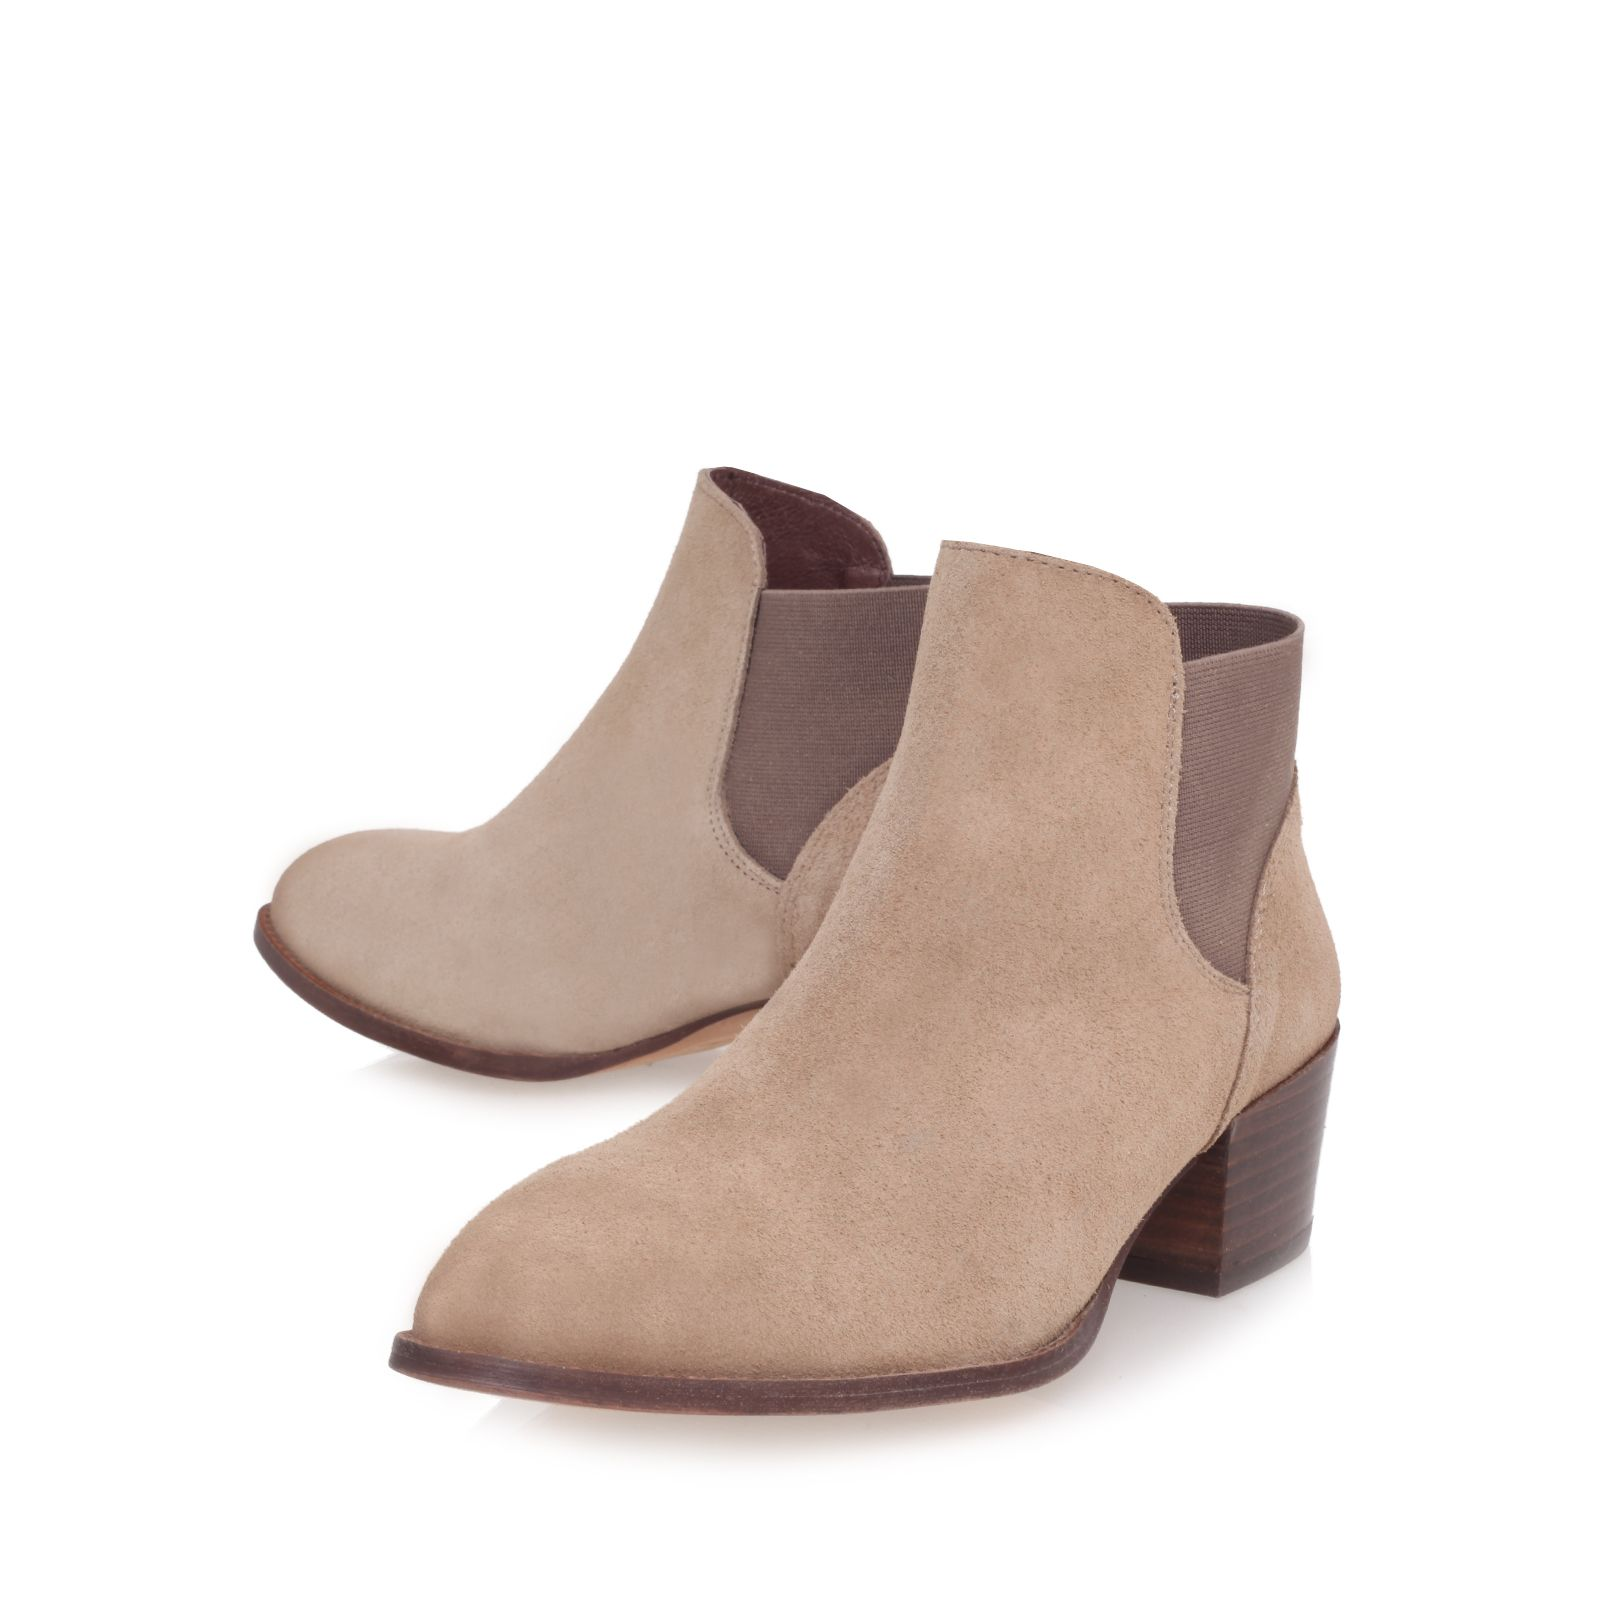 Sport mid heel ankle boots